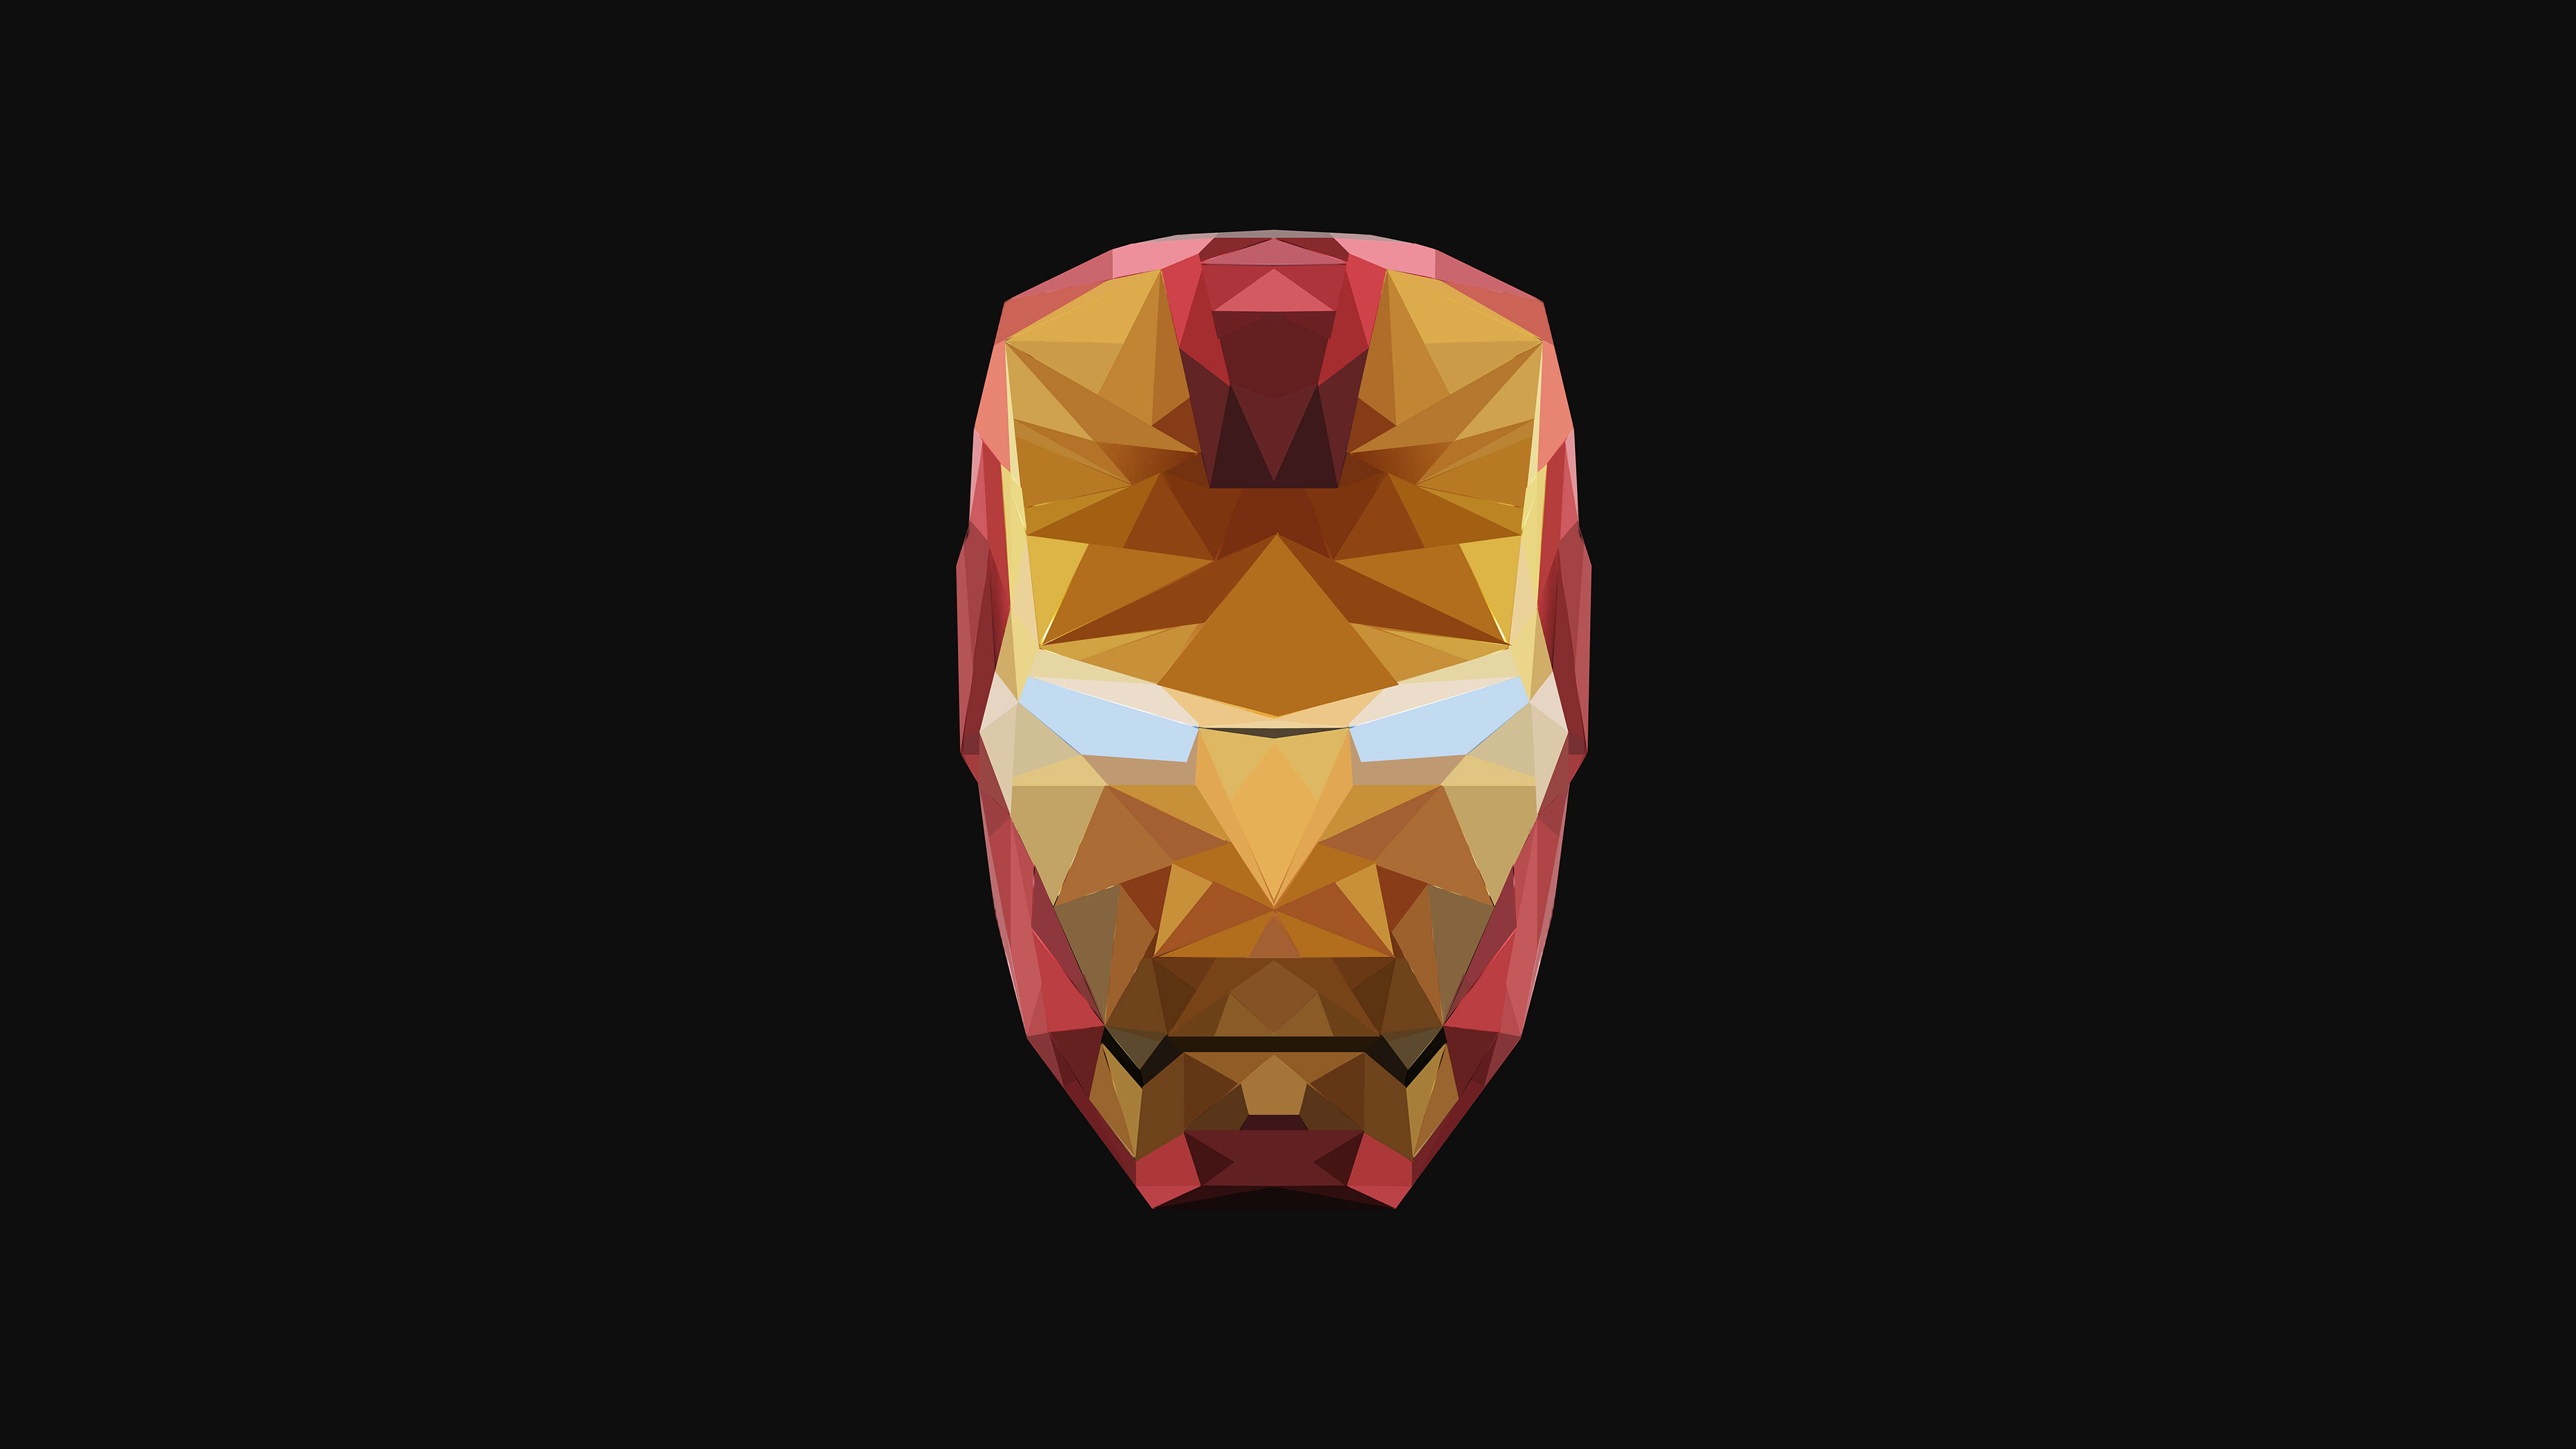 480x854 4k Iron Man Low Poly Android One Hd 4k Wallpapers